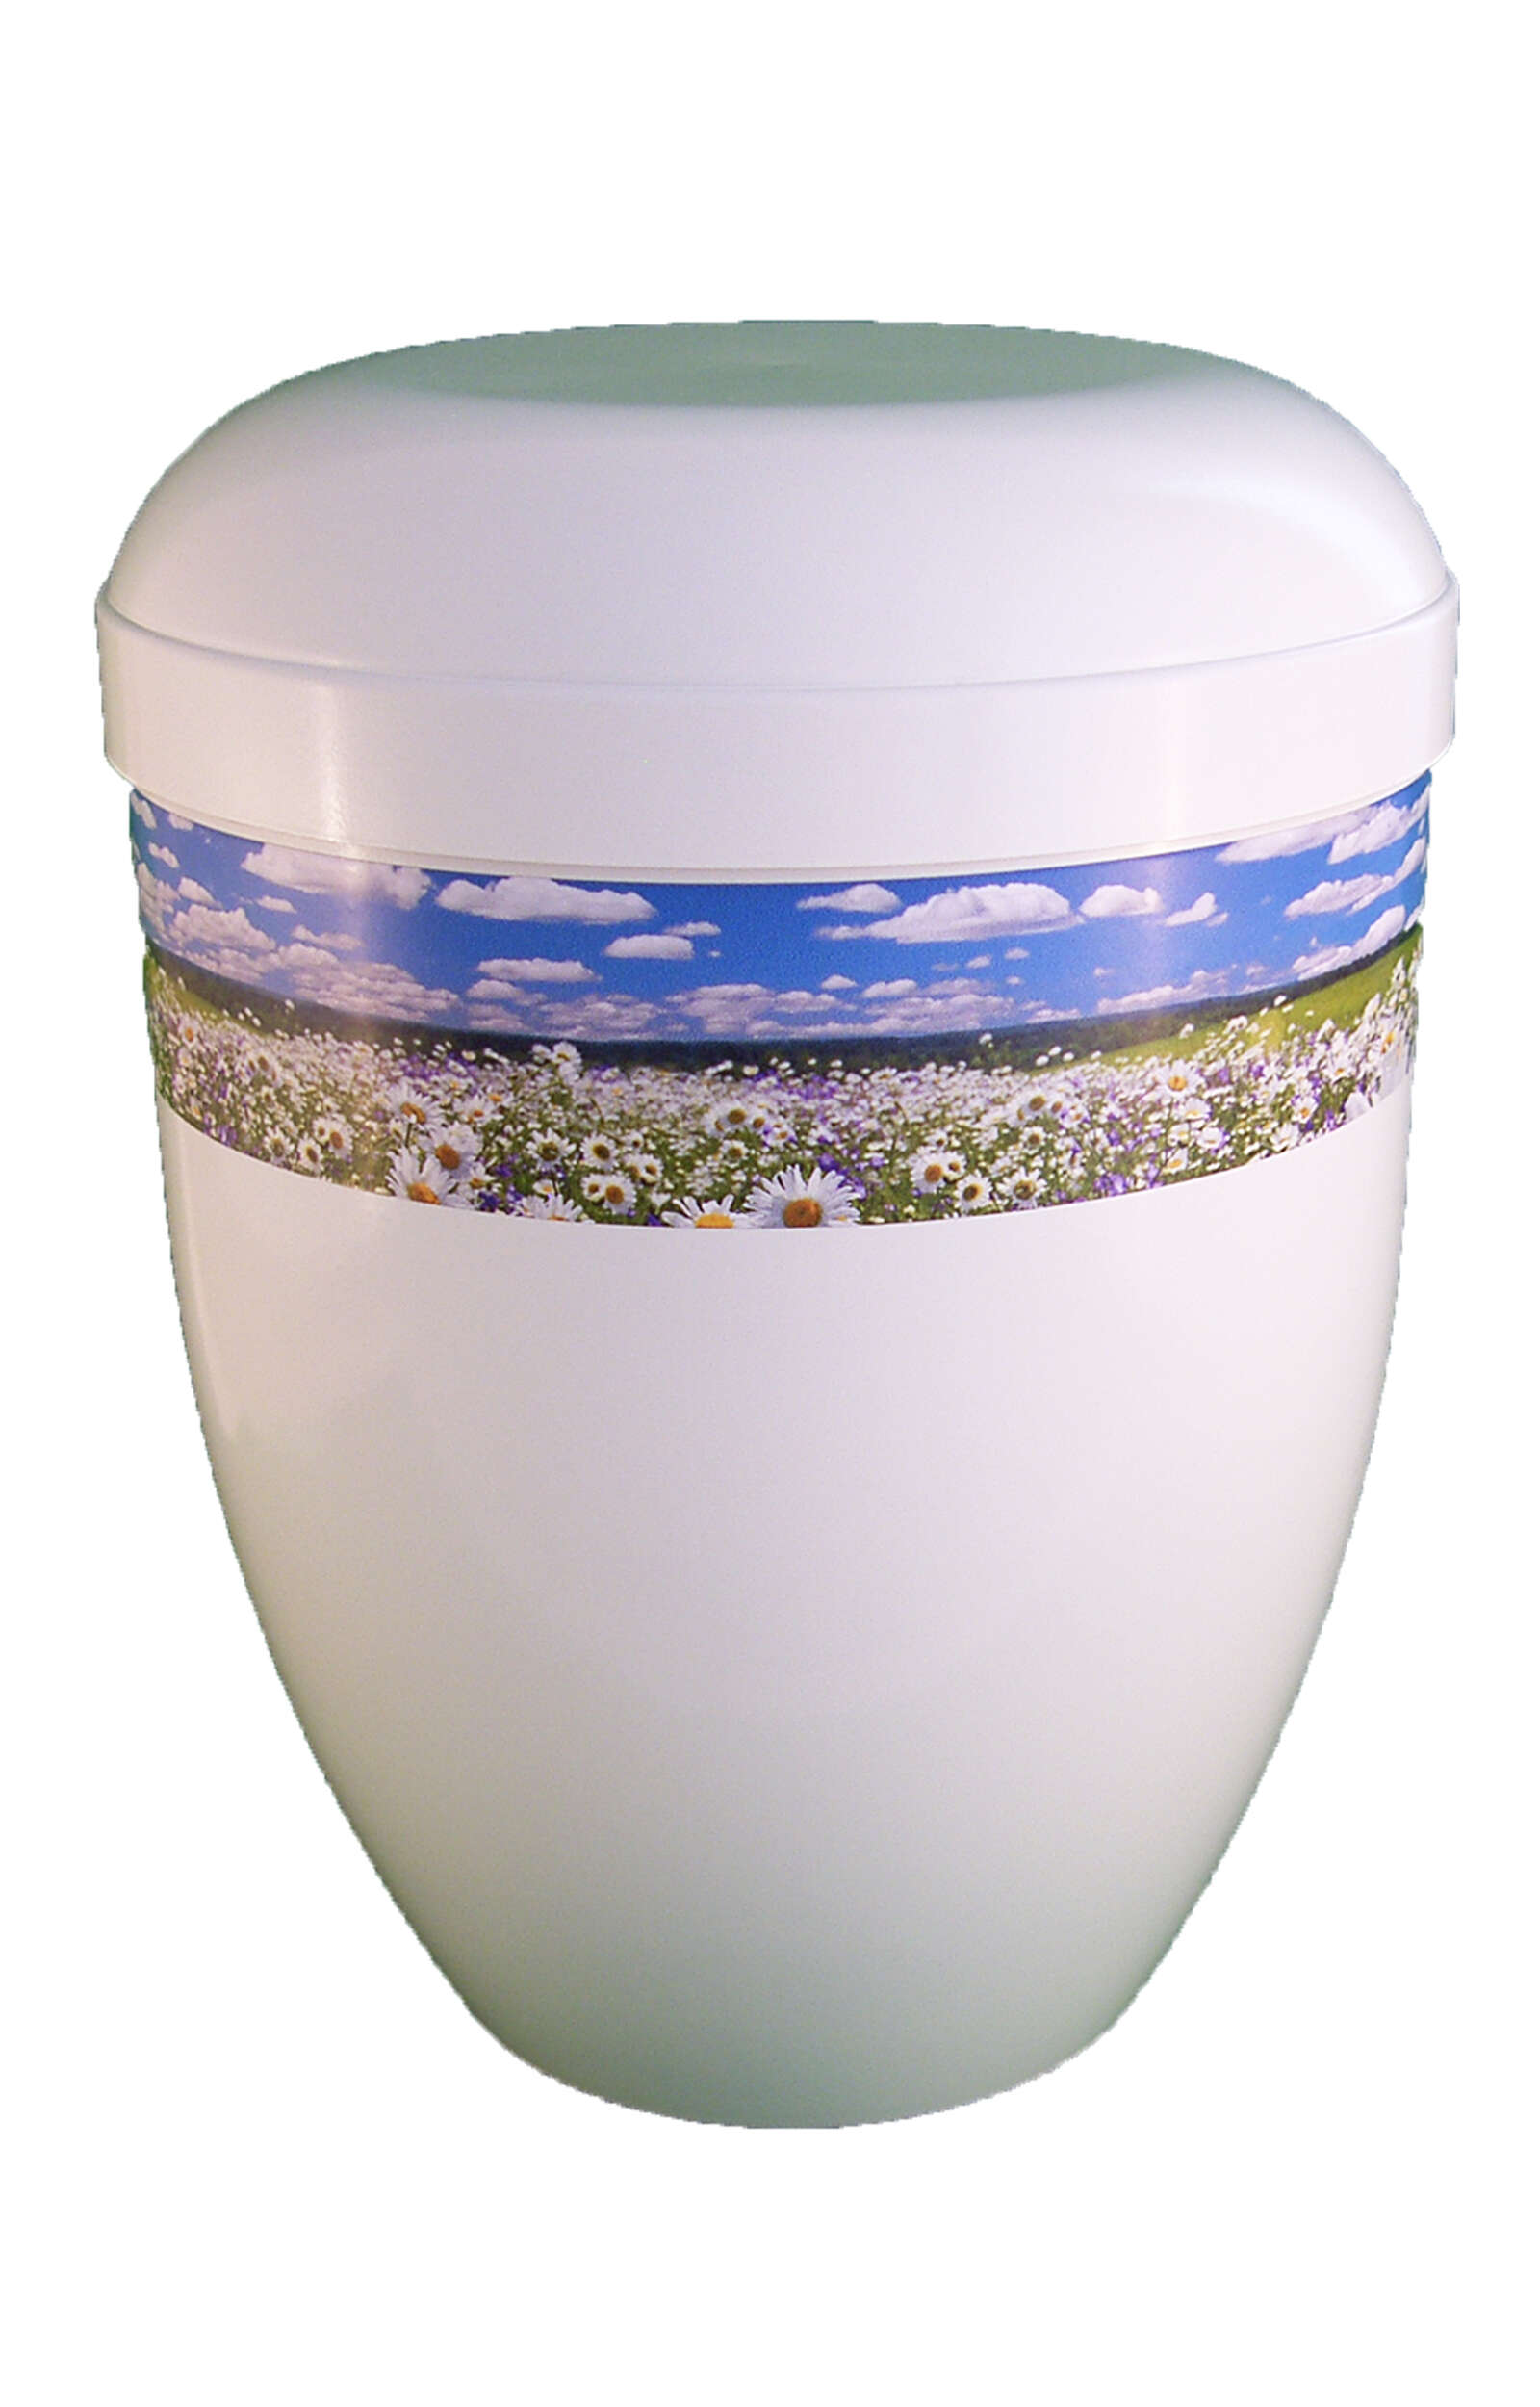 en BWG3703 biodigradable urn white glossy panorama flower meadow funeral urns on sale